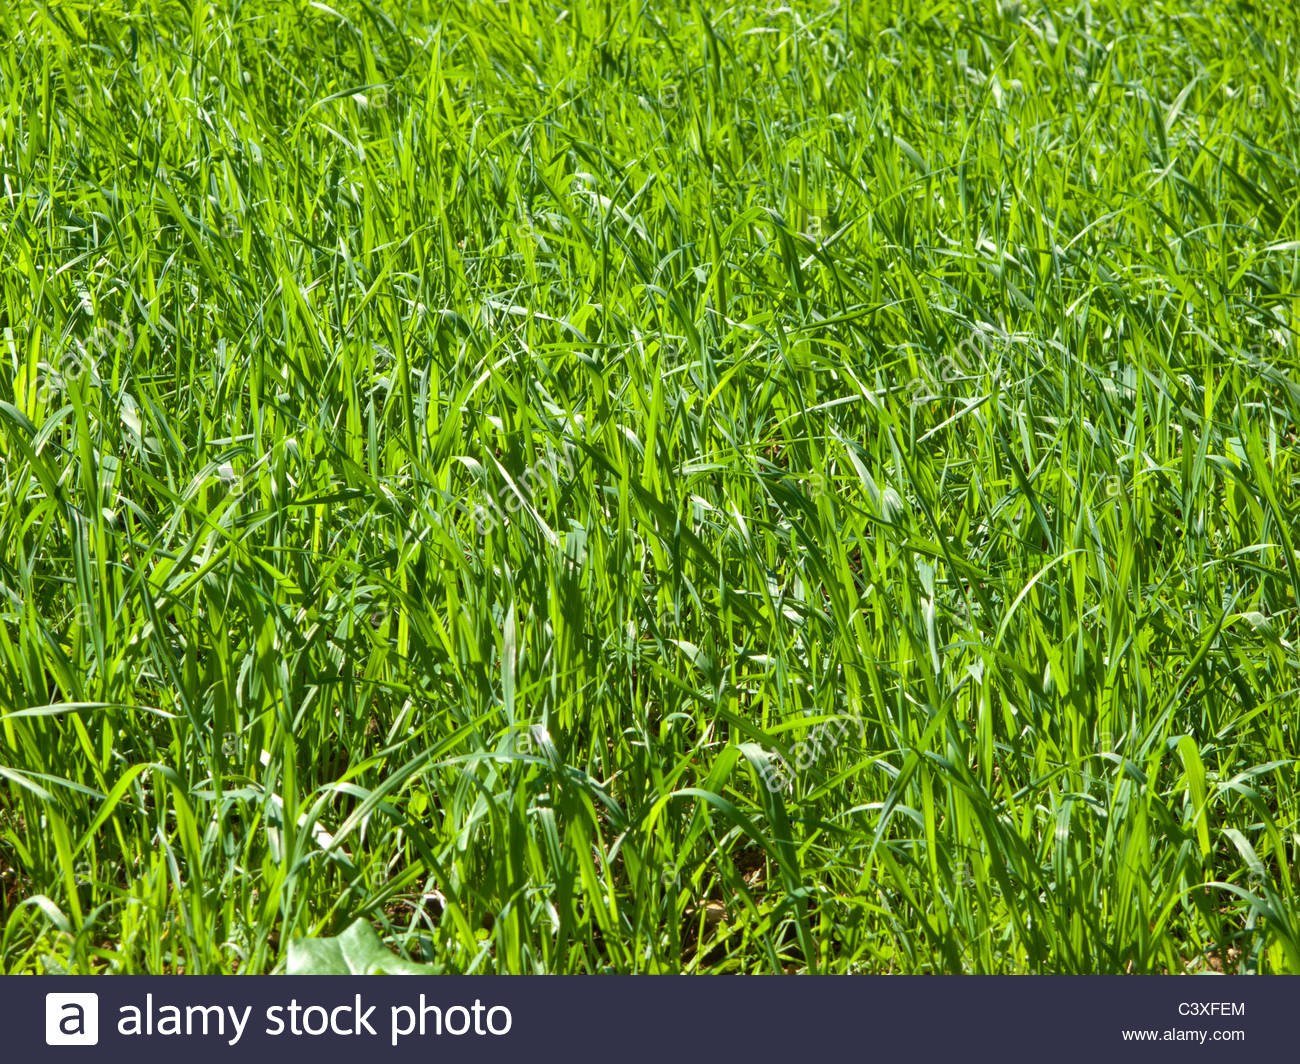 Close up of lush, green, growing grass - Stock Image